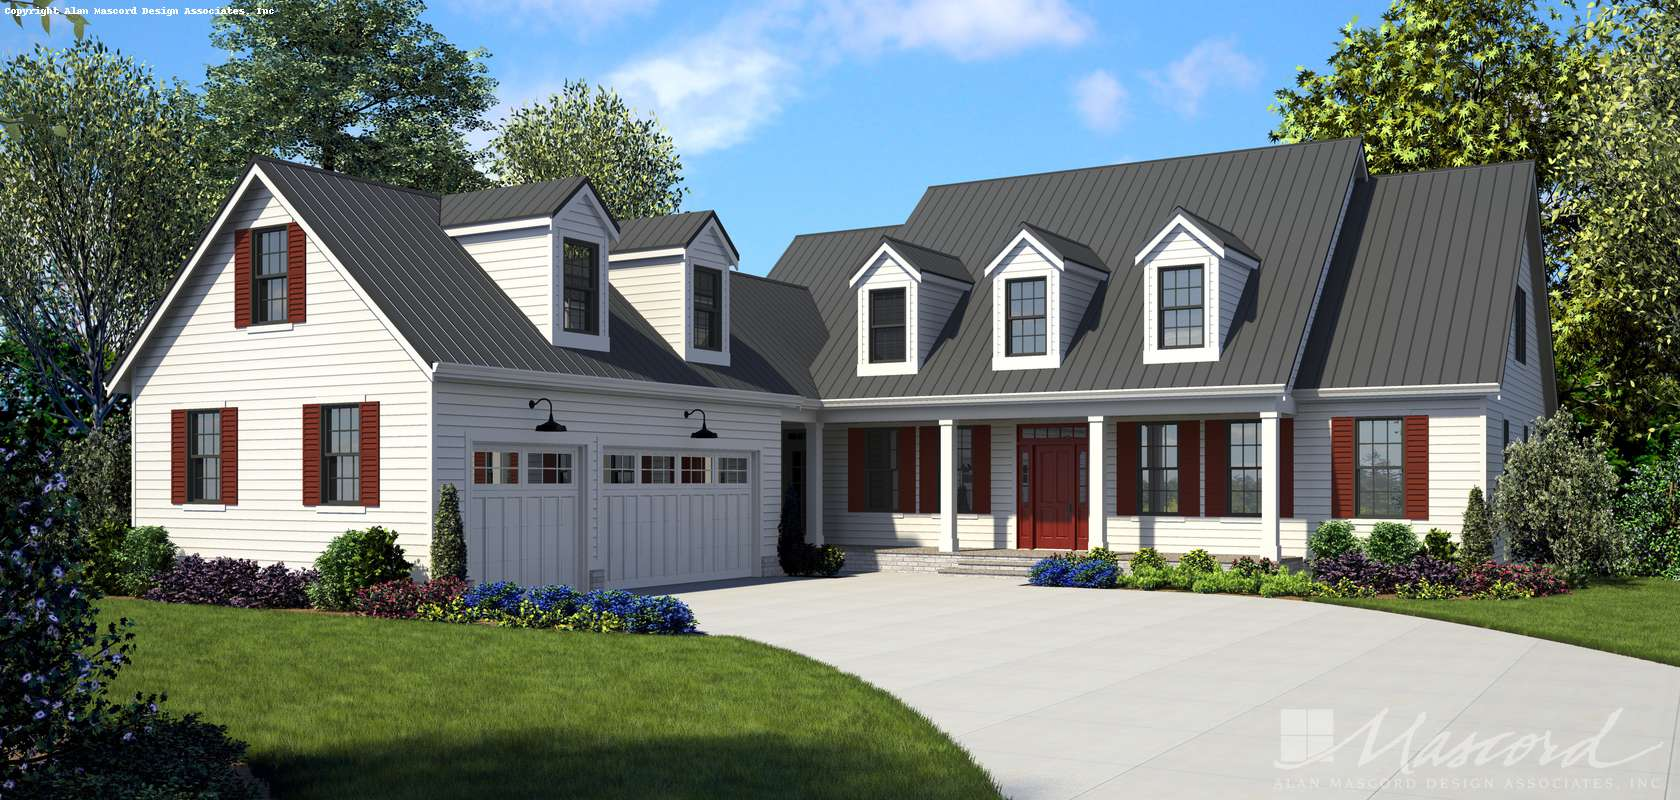 Cape Cod House Plan 22120 The Covington 2923 Sqft 4 Beds 2 1 Baths